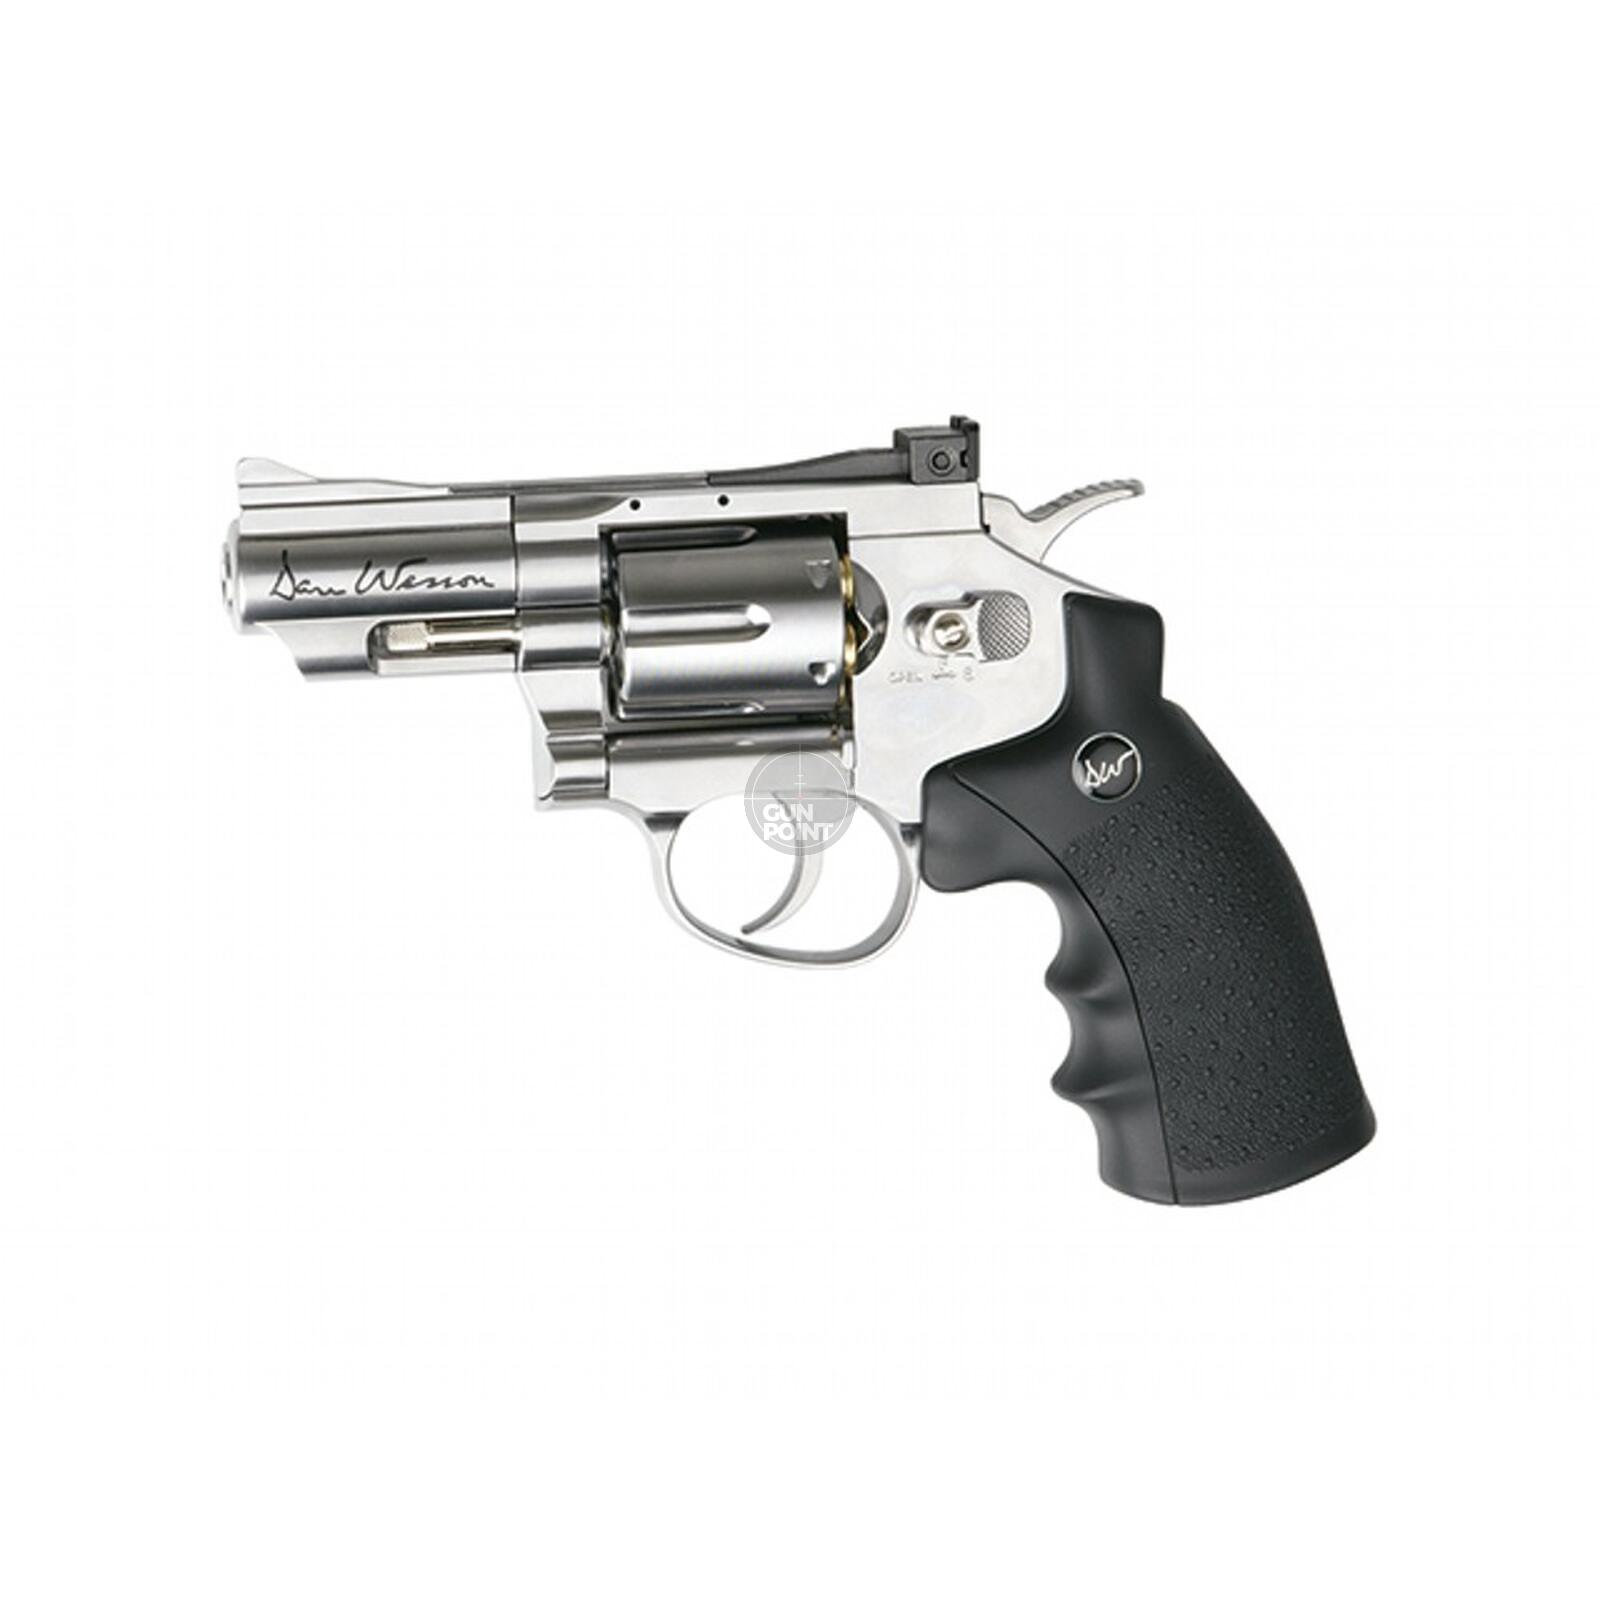 Luftpistole - Dan Wesson 2,5 Co2-System NBB Silber - Kal. 4,5 mm